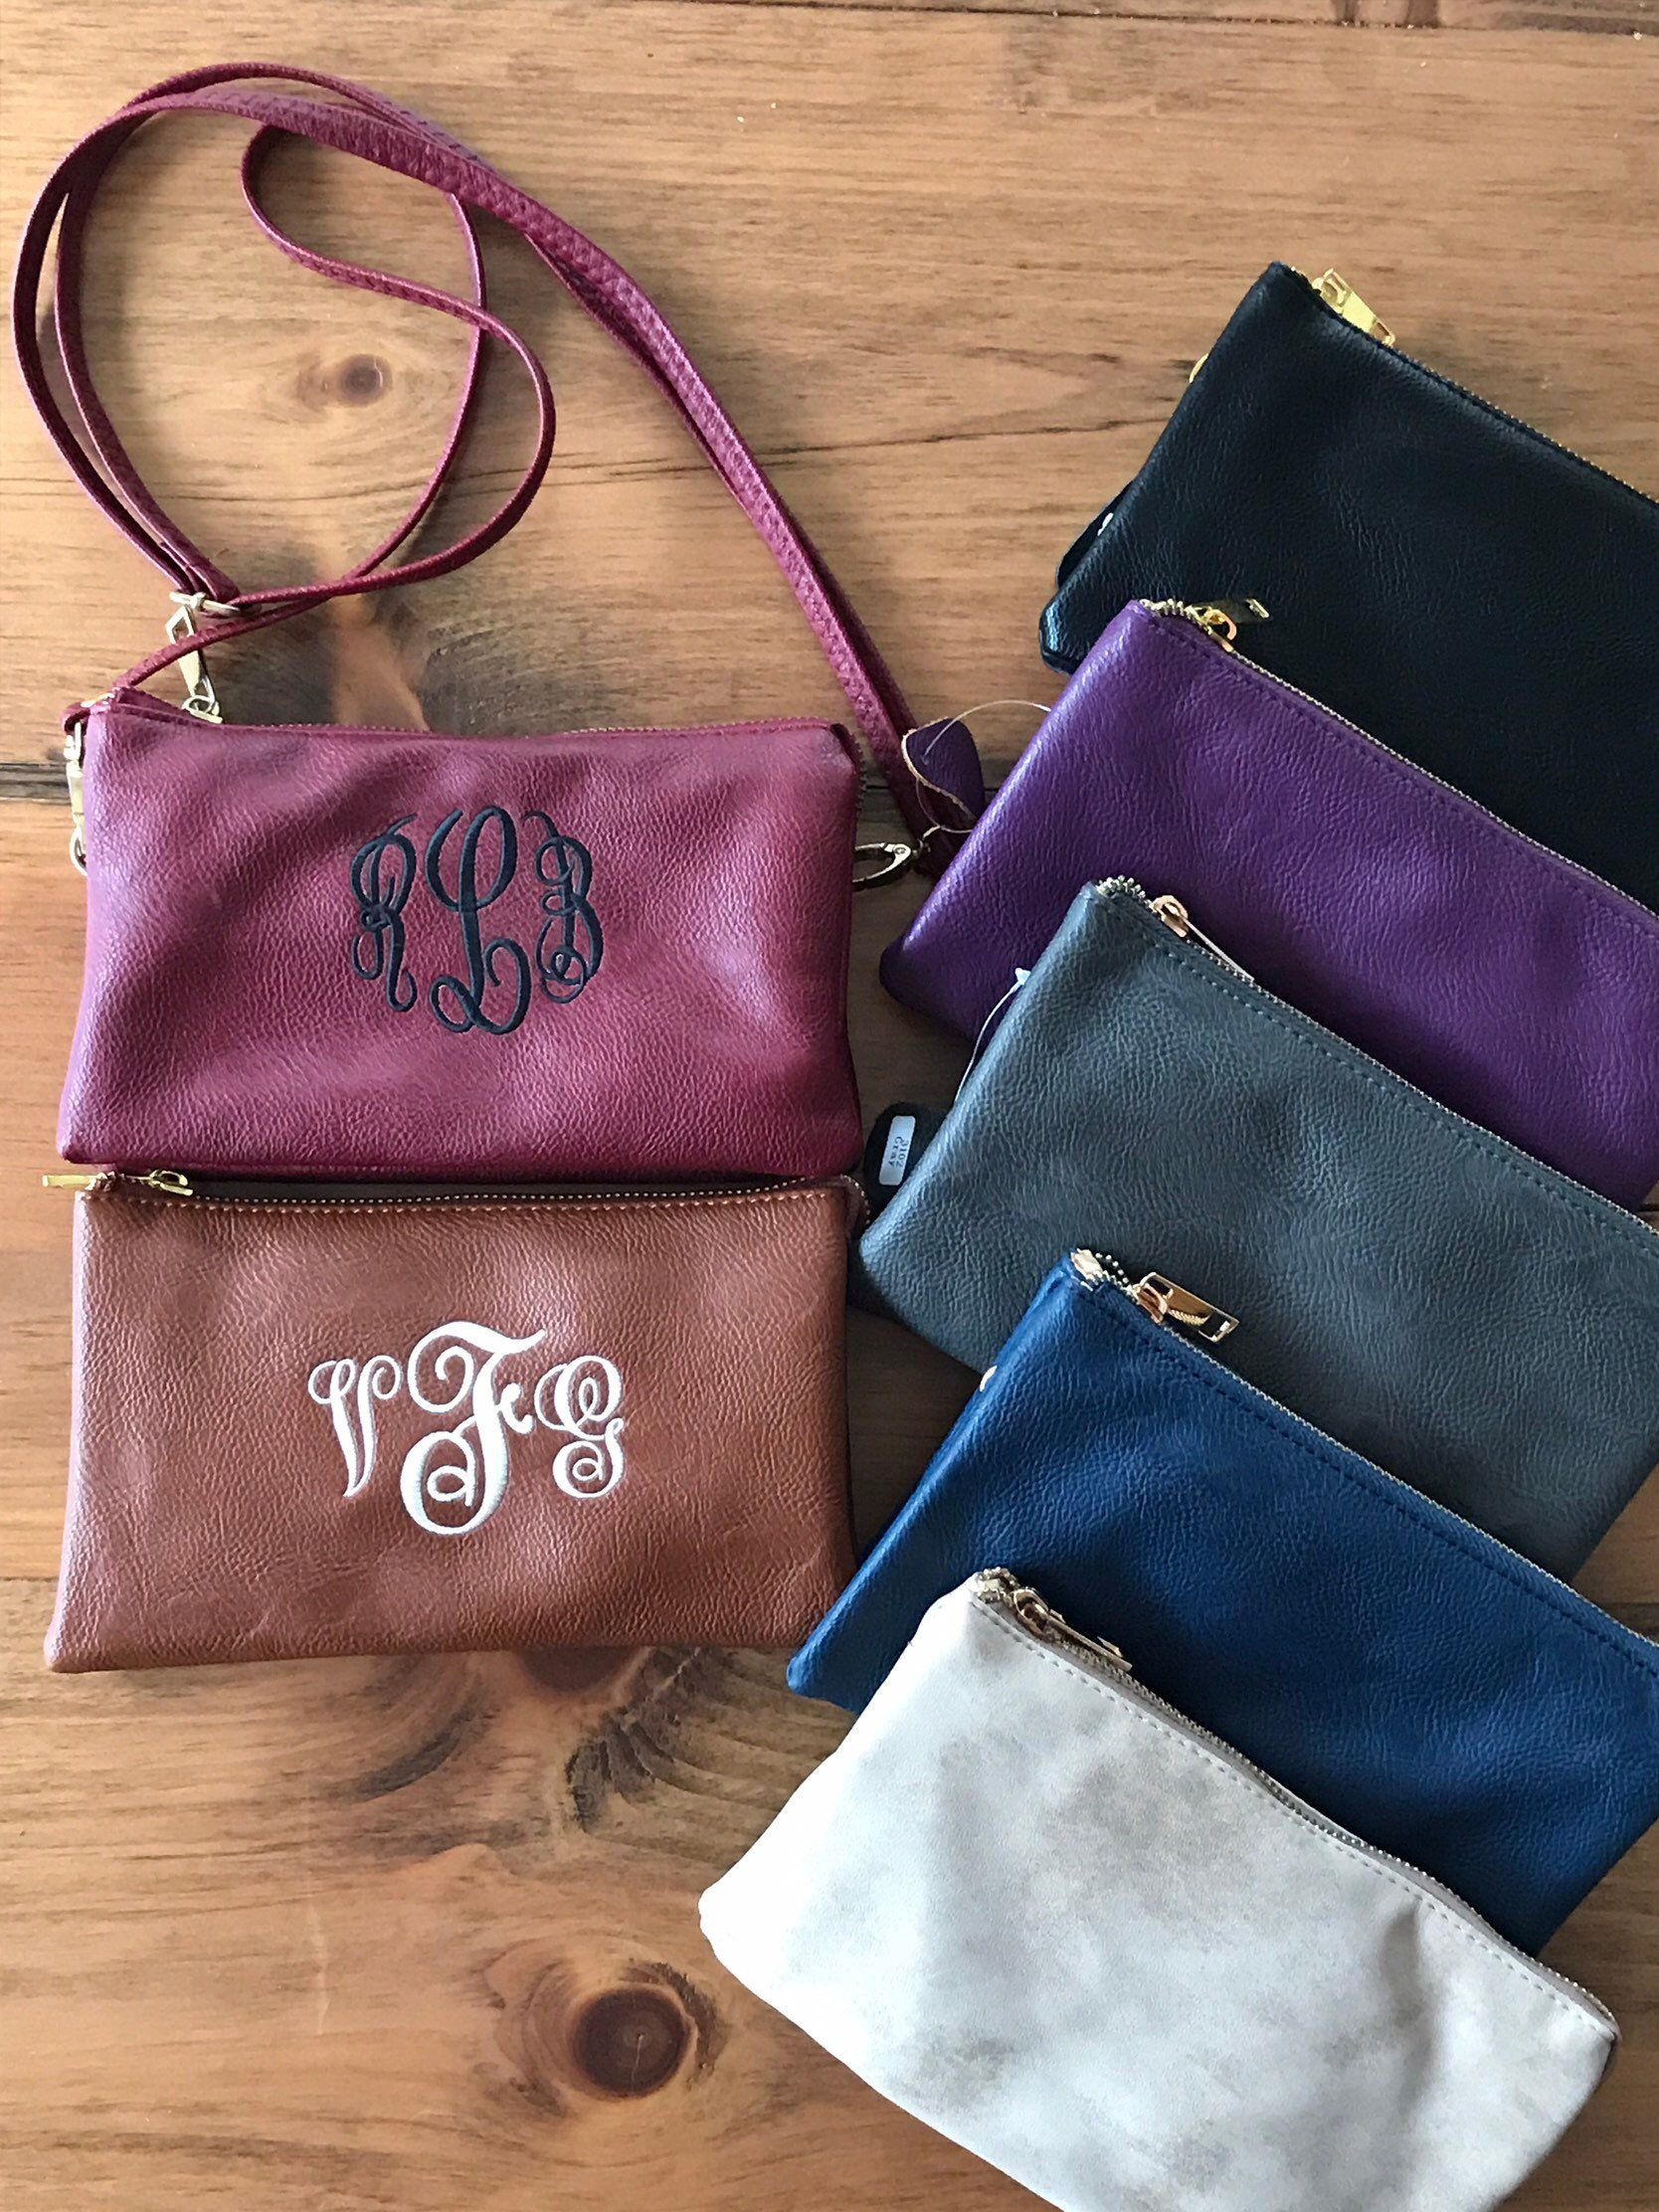 c0869a95e Excited to share this item from my #etsy shop: Small Leather Crossbody Bag  - Monogram Wristlet - Monogram Purse - Wristlet Wallet - Bridesmaids Gift  ...